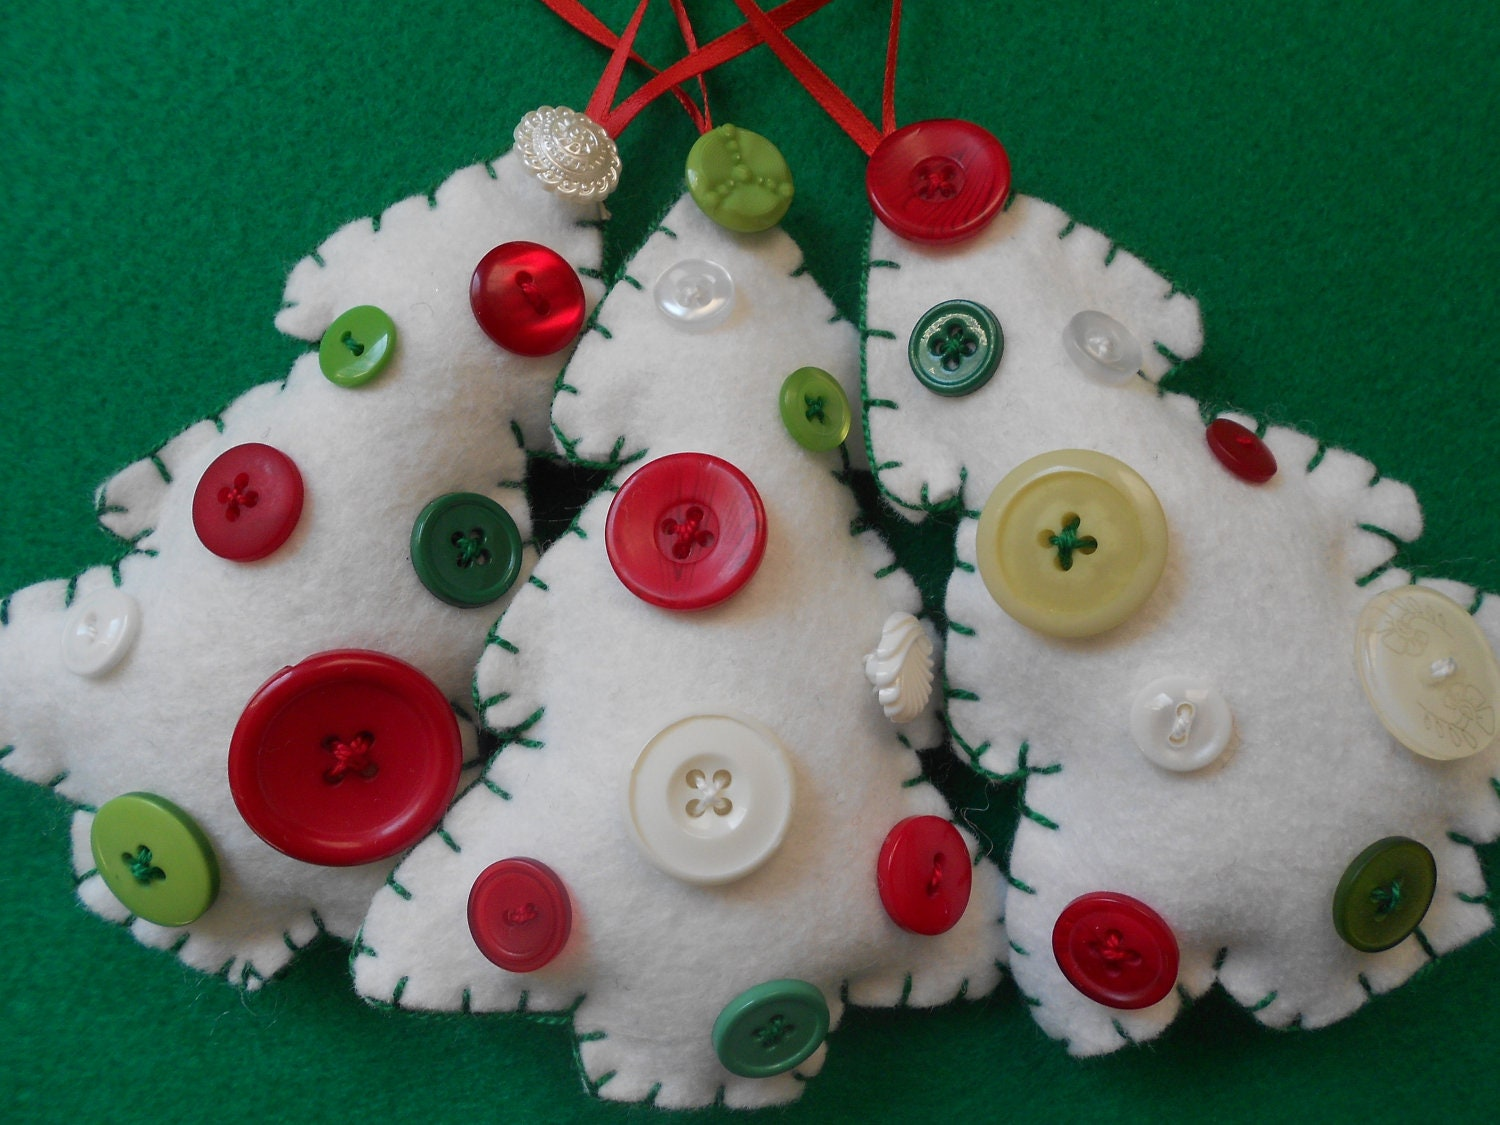 White felt and button Christmas tree ornaments